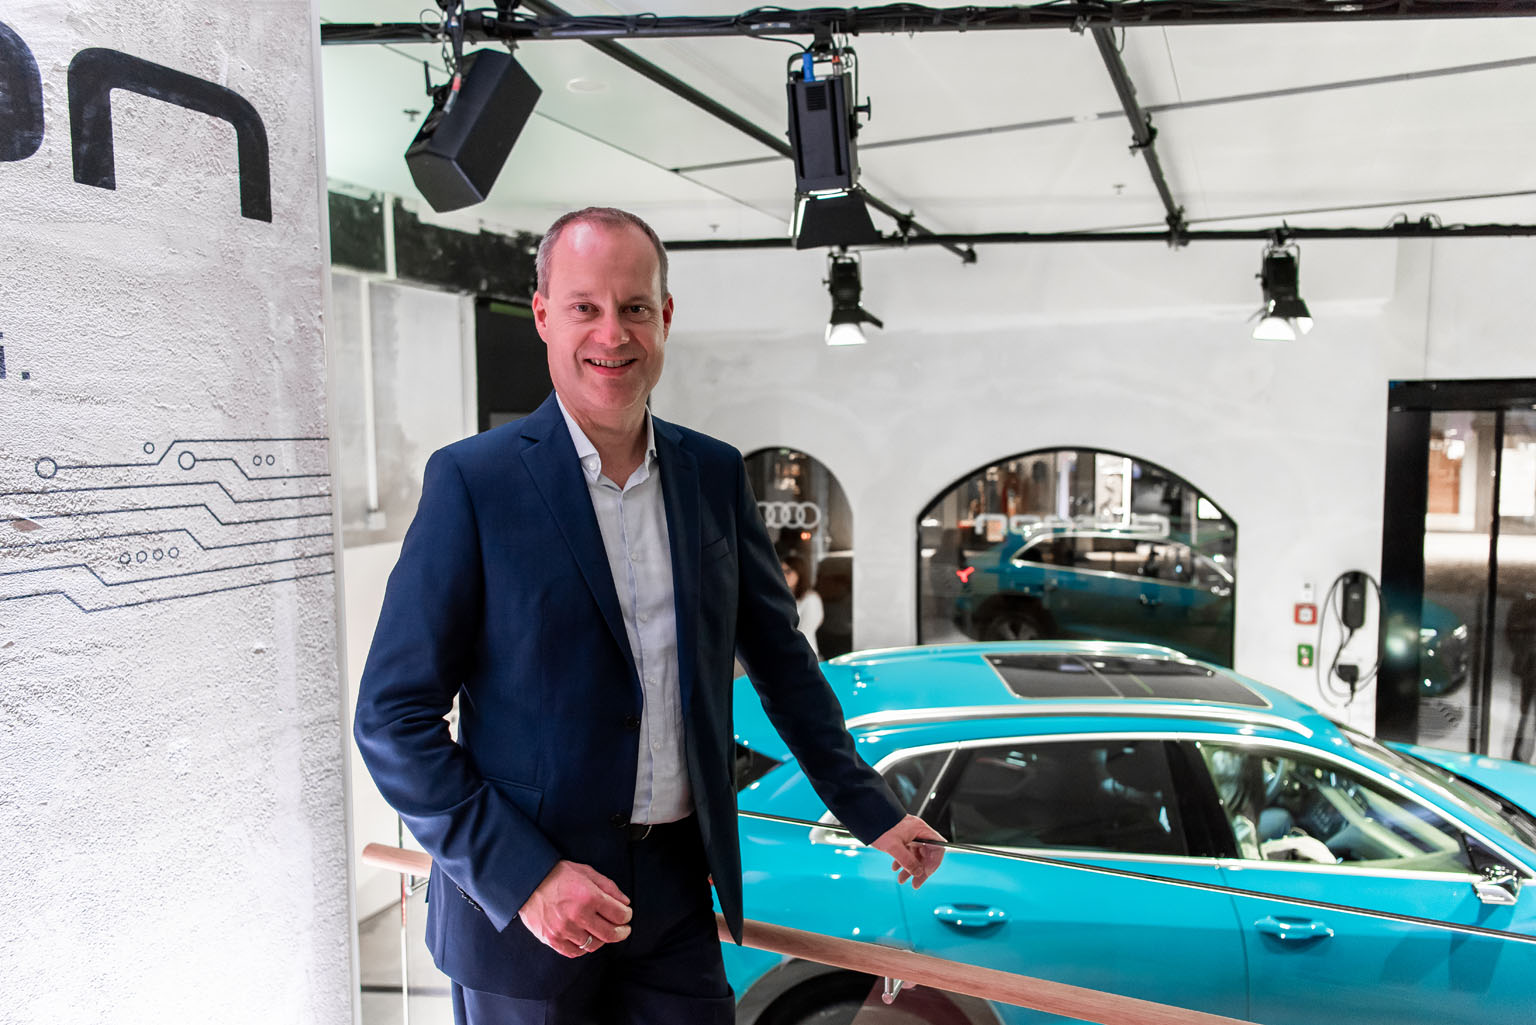 Jens van Eikels im Audi e-tron Pop-up Store in Zürich. (Tom Lüthi)